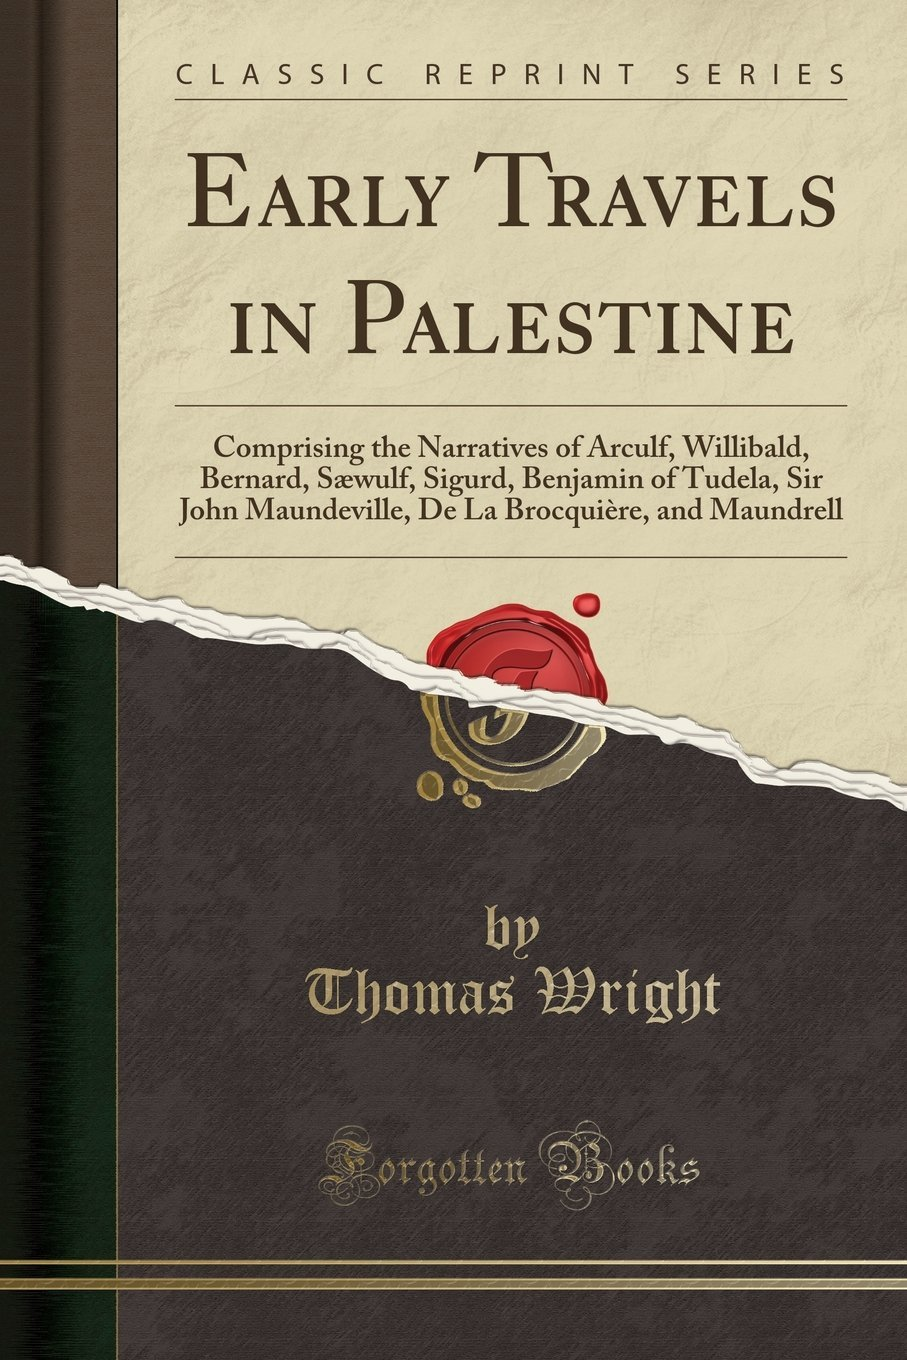 Download Early Travels in Palestine: Comprising the Narratives of Arculf, Willibald, Bernard, Sæwulf, Sigurd, Benjamin of Tudela, Sir John Maundeville, De La Brocquière, and Maundrell (Classic Reprint) pdf